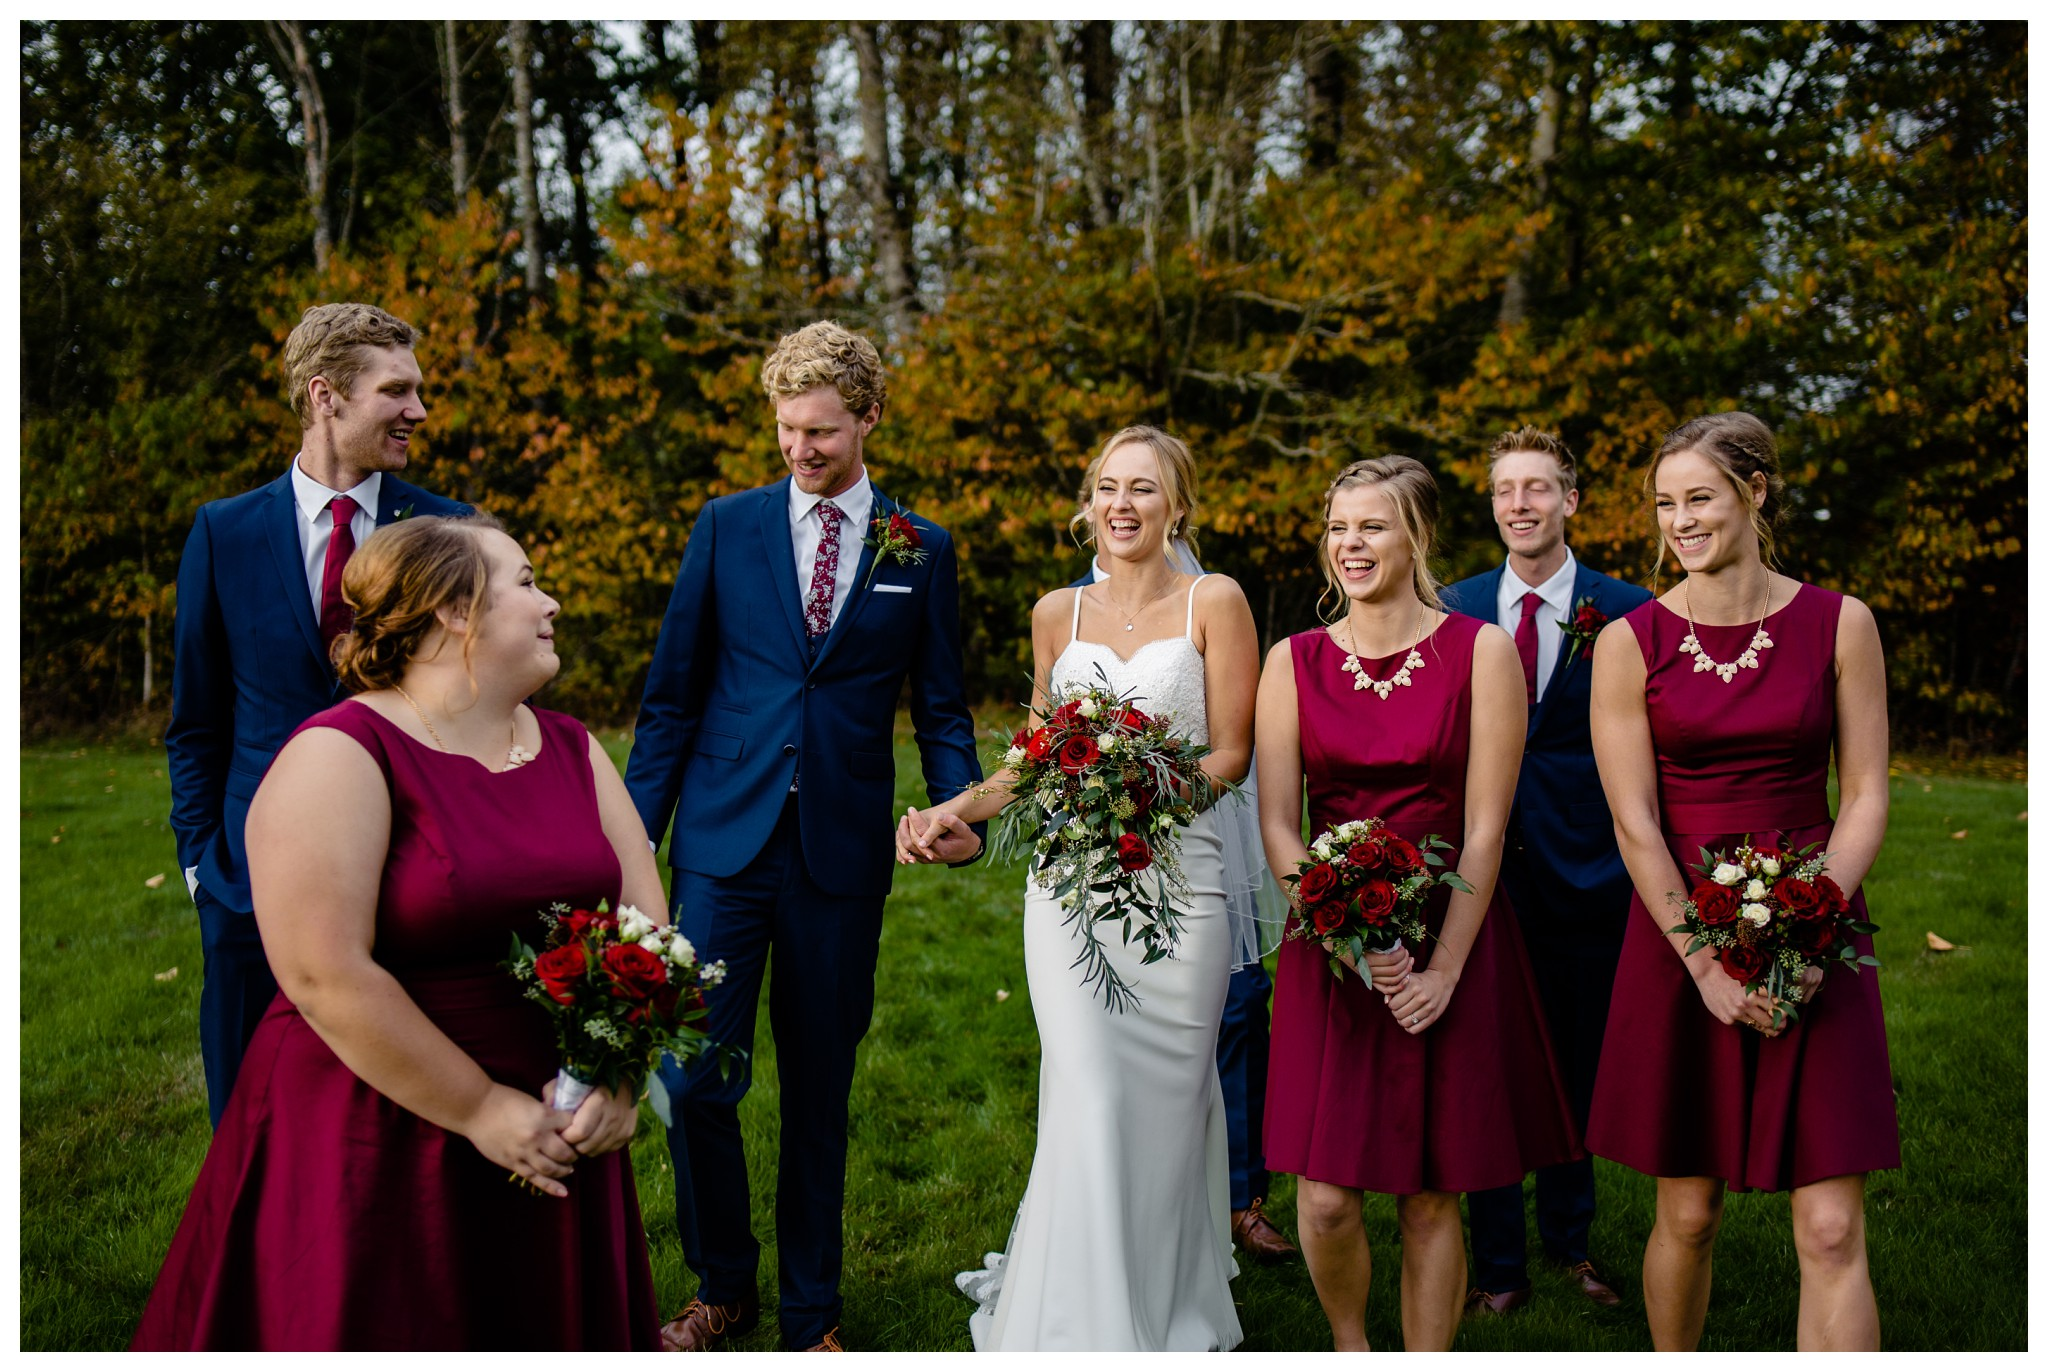 Campbell Valley Park Wedding Photographer Canadian Reformed Church Willoughby Heights Christian Fall Burgundy Navy Roses Wedding_0062.jpg